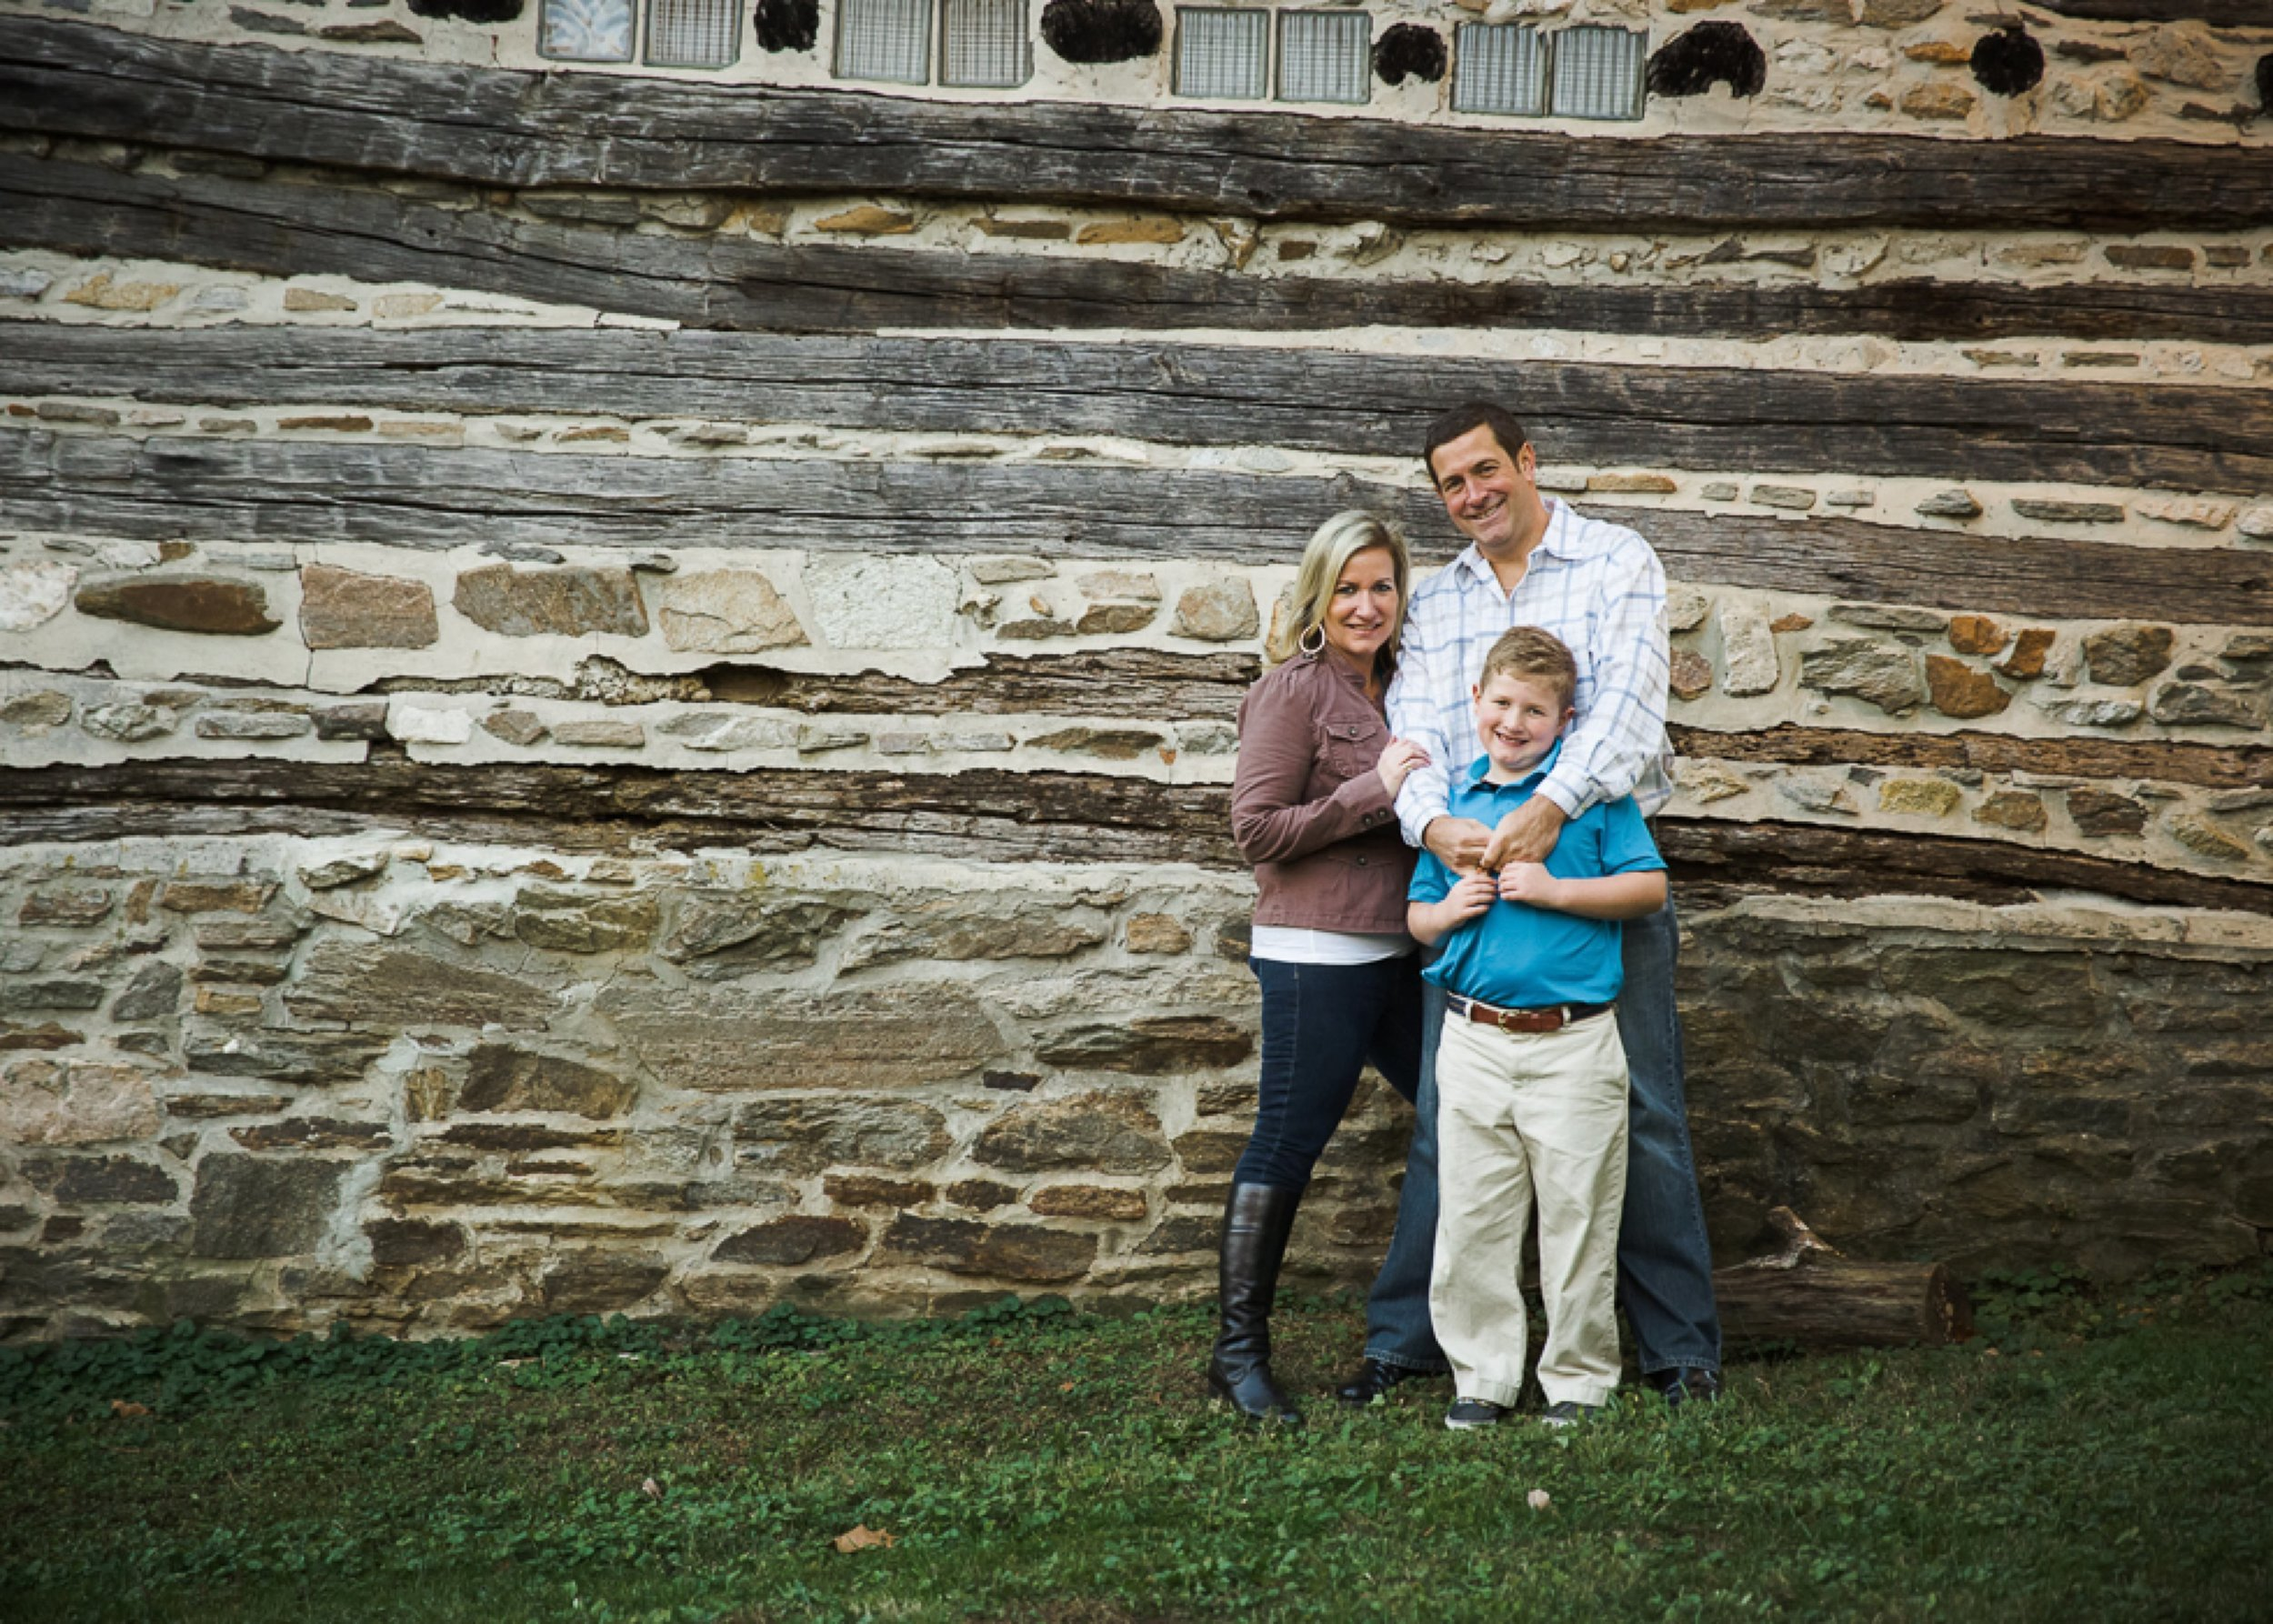 Corbin Family,blog pick,corbin digitals,corbin final,cromwell valley,